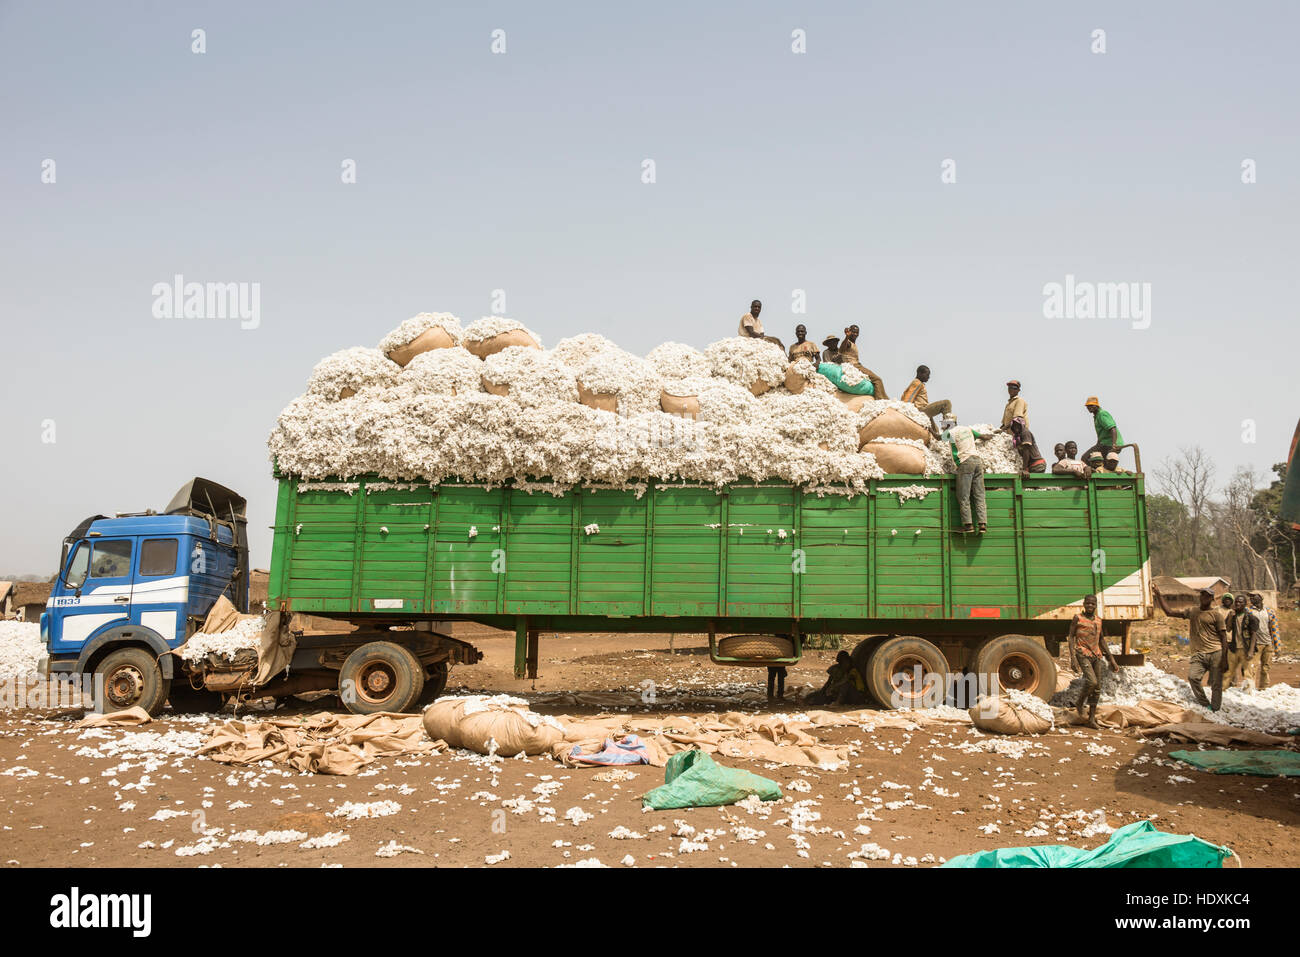 Work in the cotton fields of Cote D'Ivoire, (Ivory Coast) - Stock Image